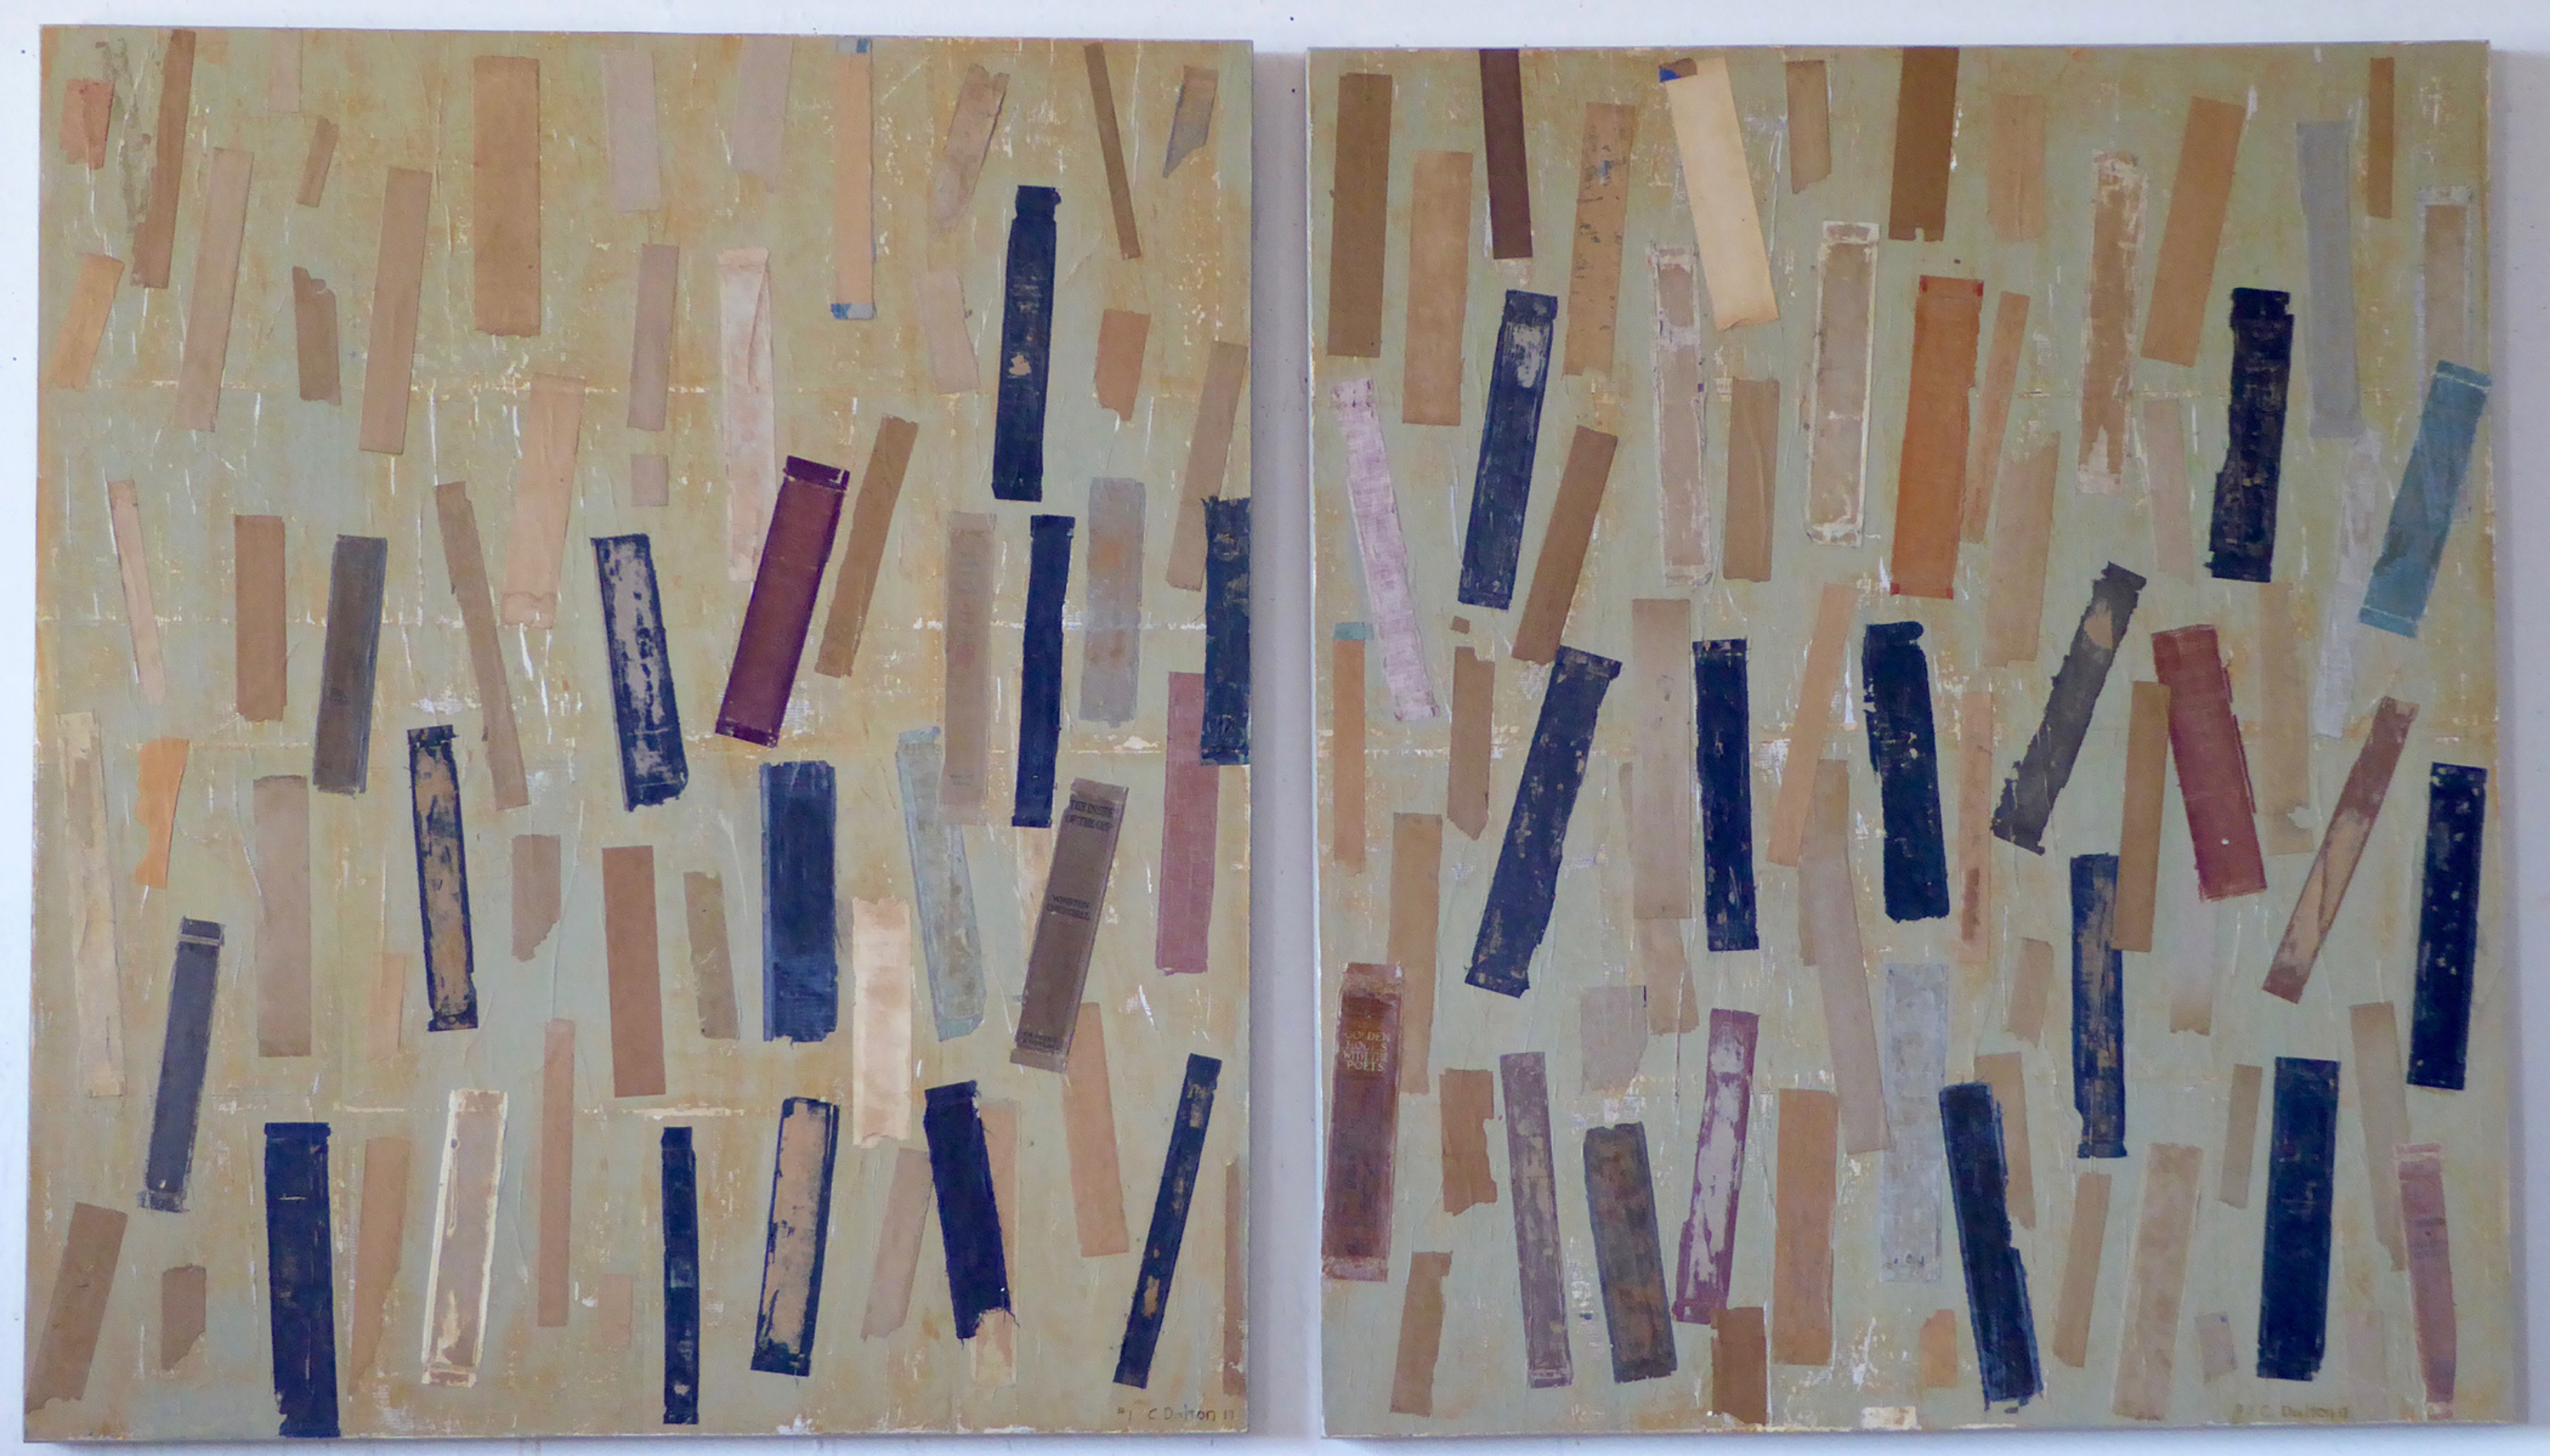 The Physicality Of Books, By Carol Dalton, At Library Art Gallery